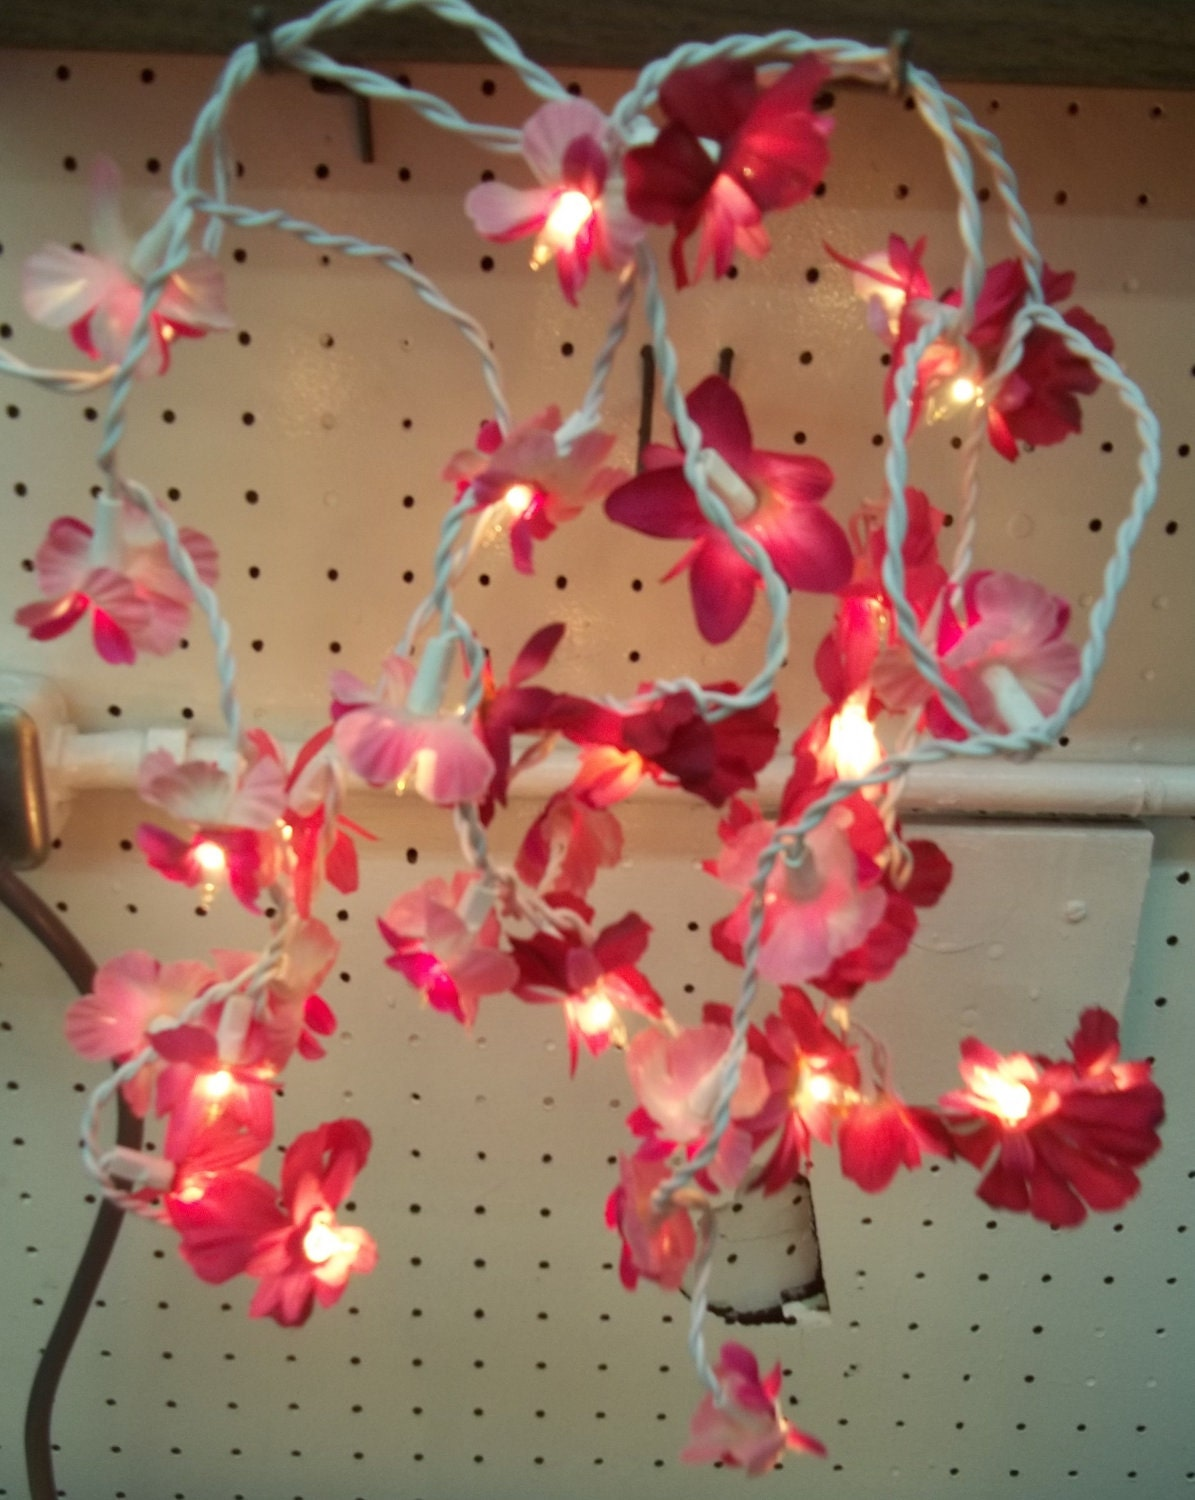 String Lights With Flowers : Flower String Light Set Floral Display Fairy Nightlight by 2bEtsy